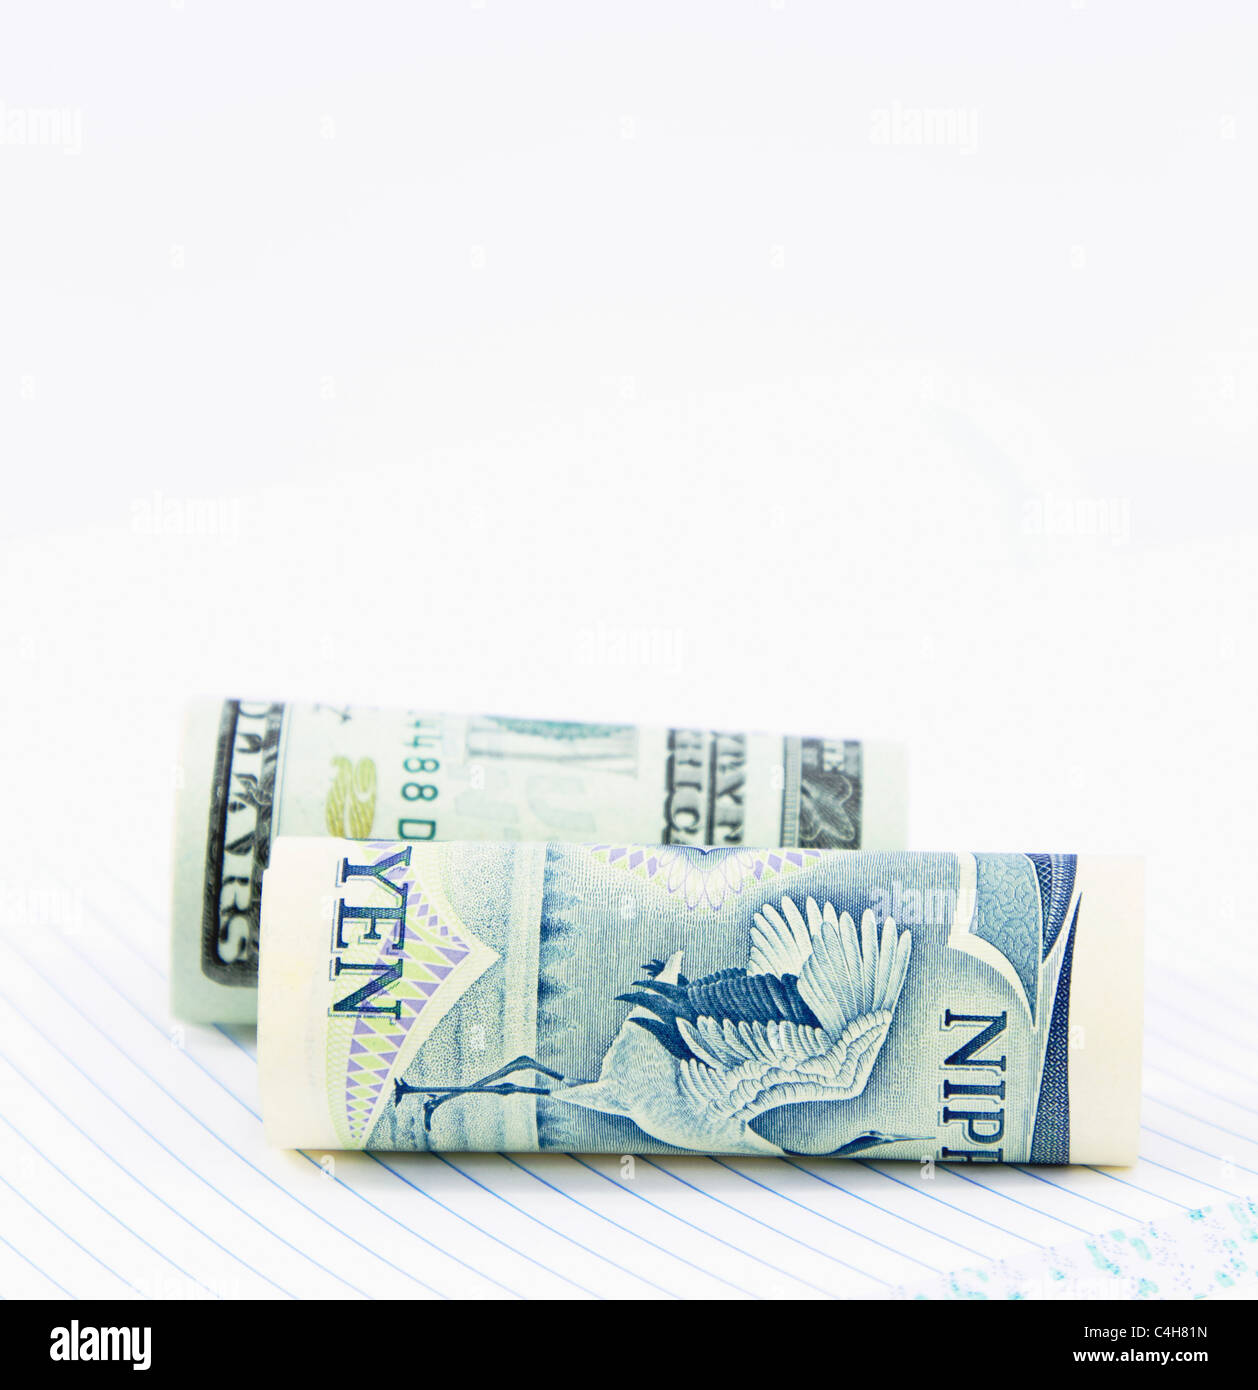 On a notebook with lined pages, two currencies, the dollar and yen, are positioned together in close up image. - Stock Image